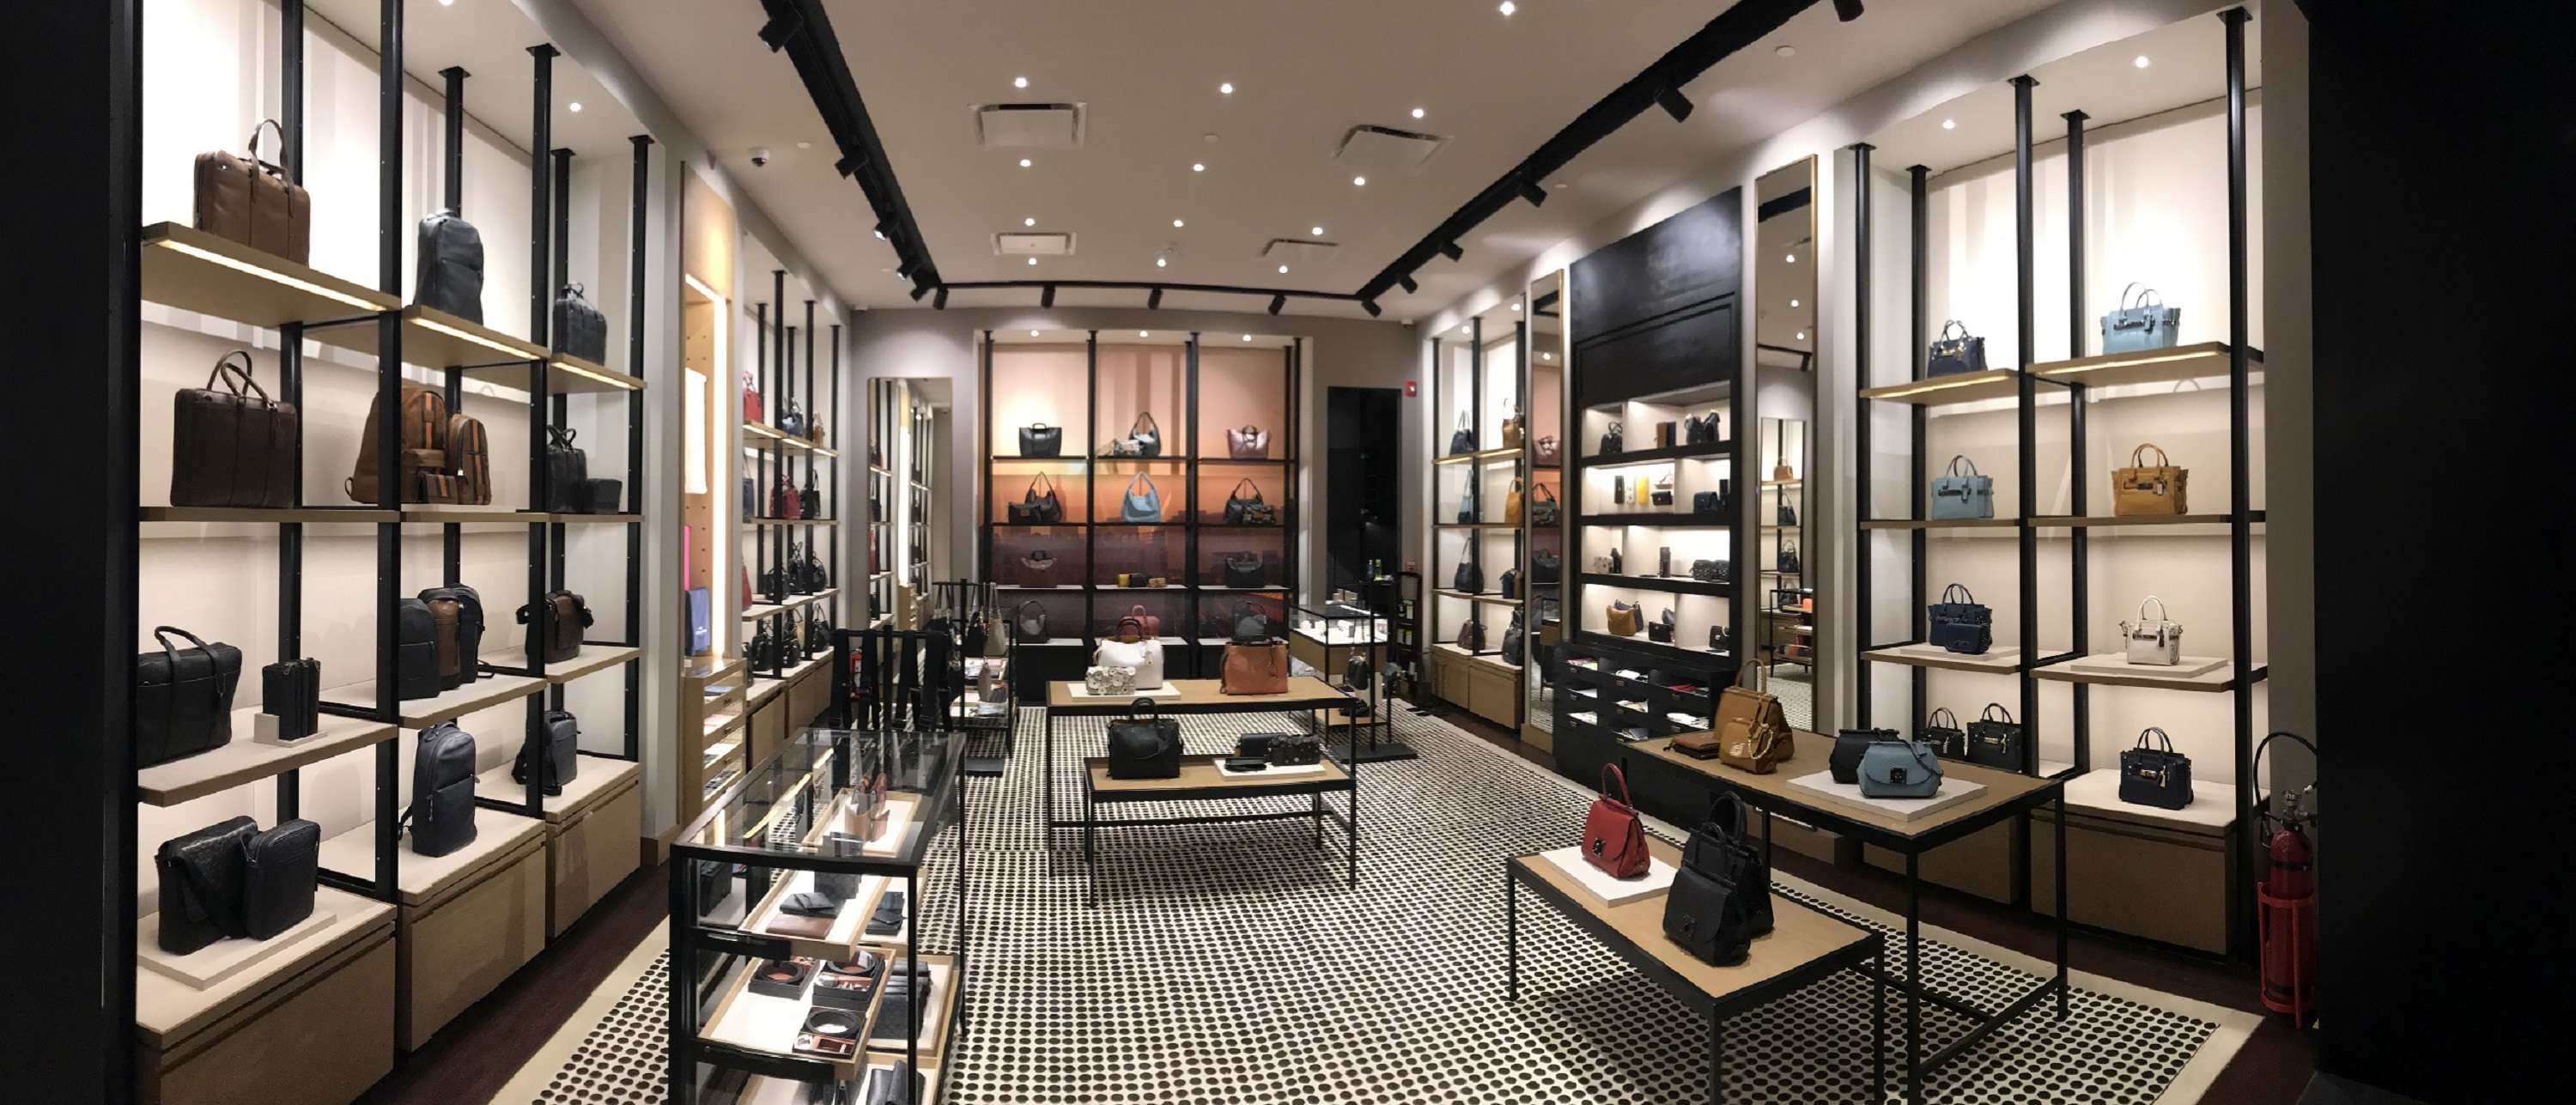 New York's luxury brand Coach opens at Delhi international airport